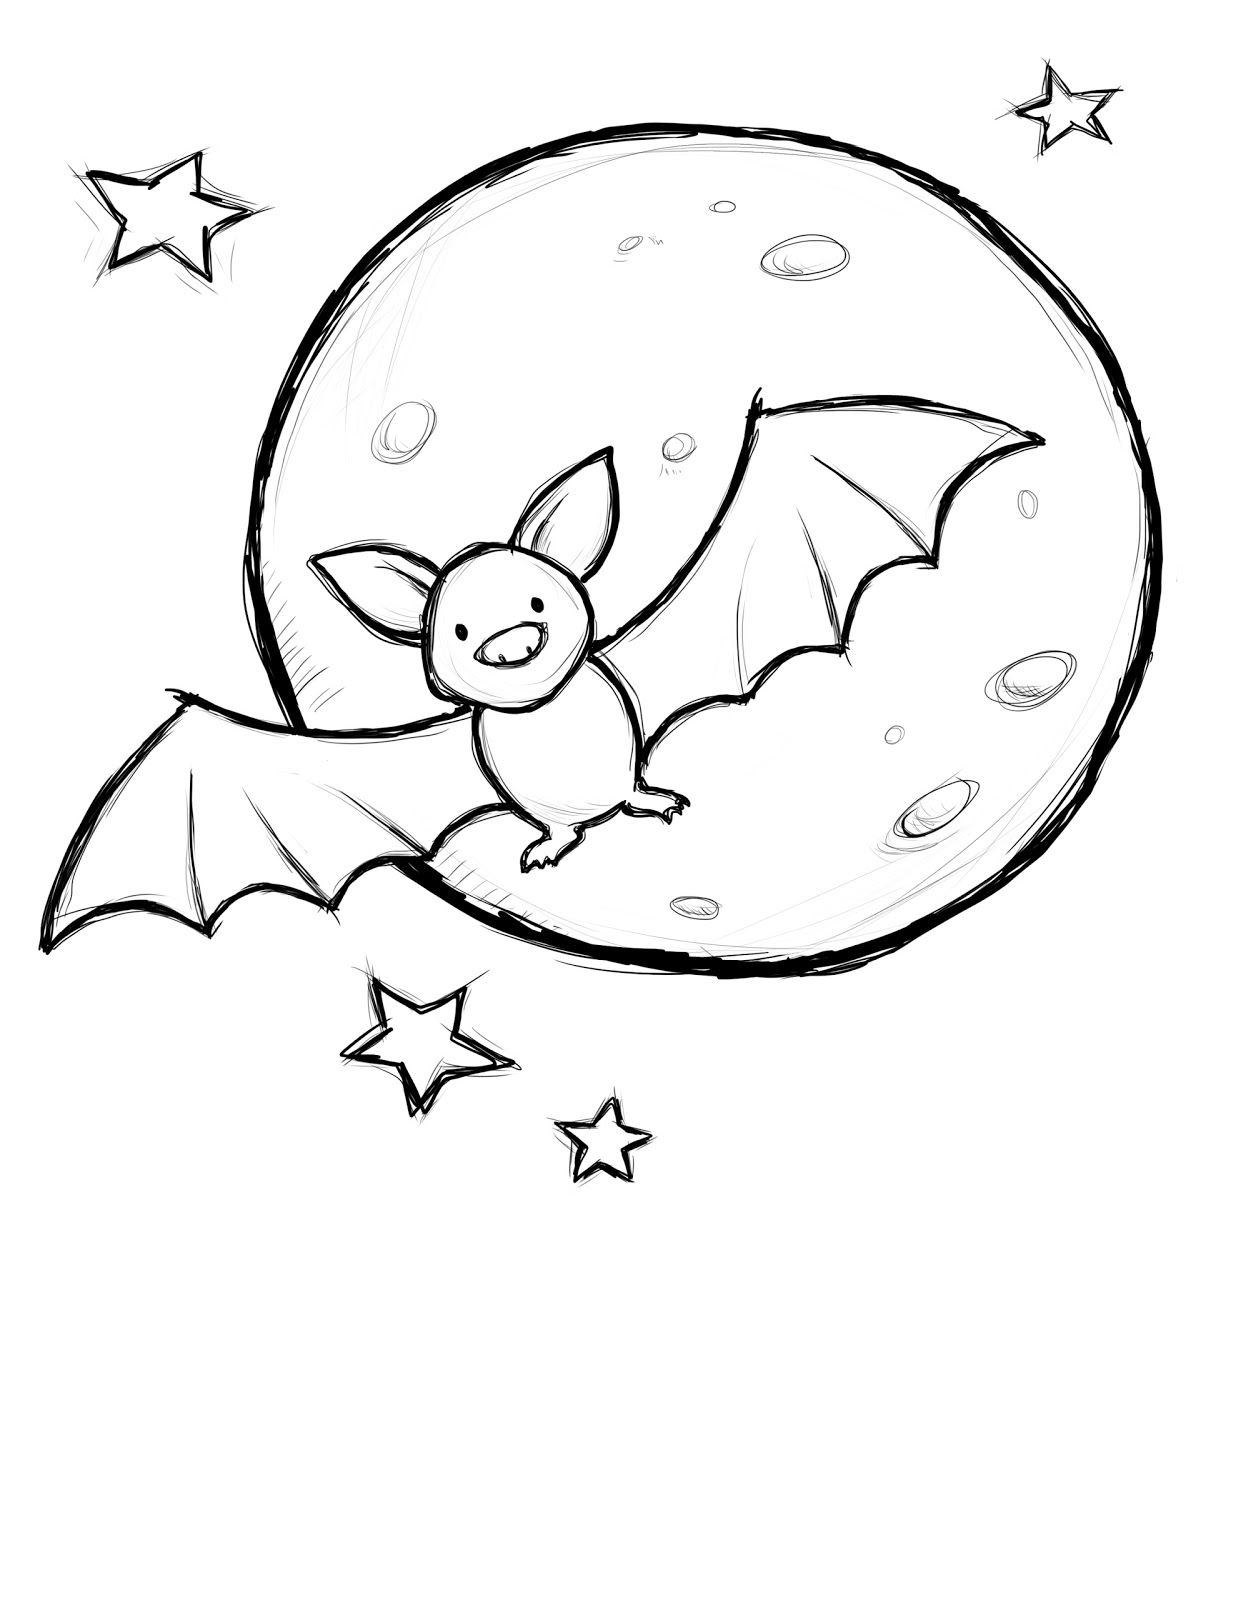 free printable halloween coloring pages bats 200 free halloween coloring pages for kids the suburban mom printable halloween bats pages free coloring